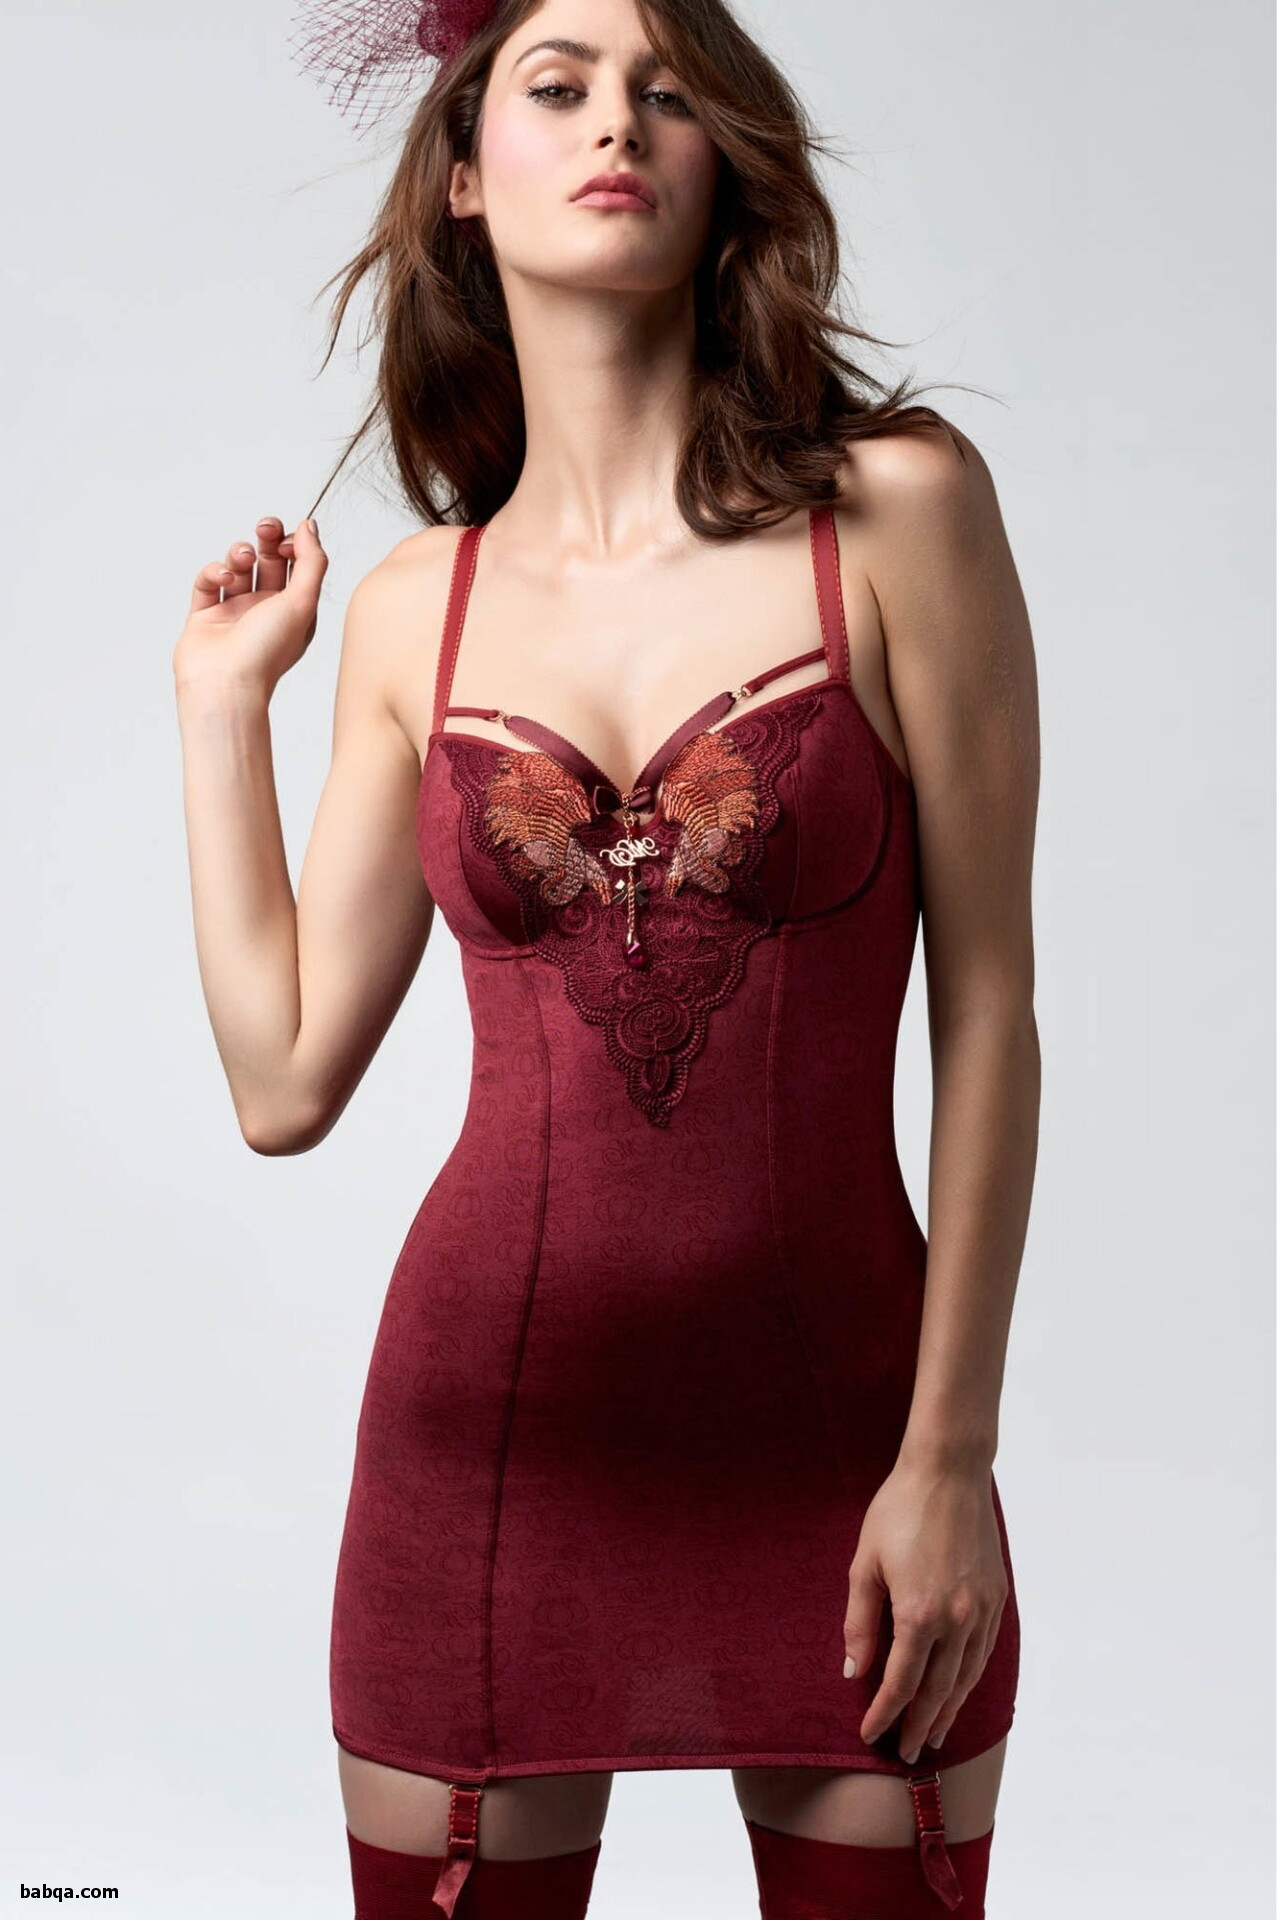 silk stocking college station tx and sensuous lingerie